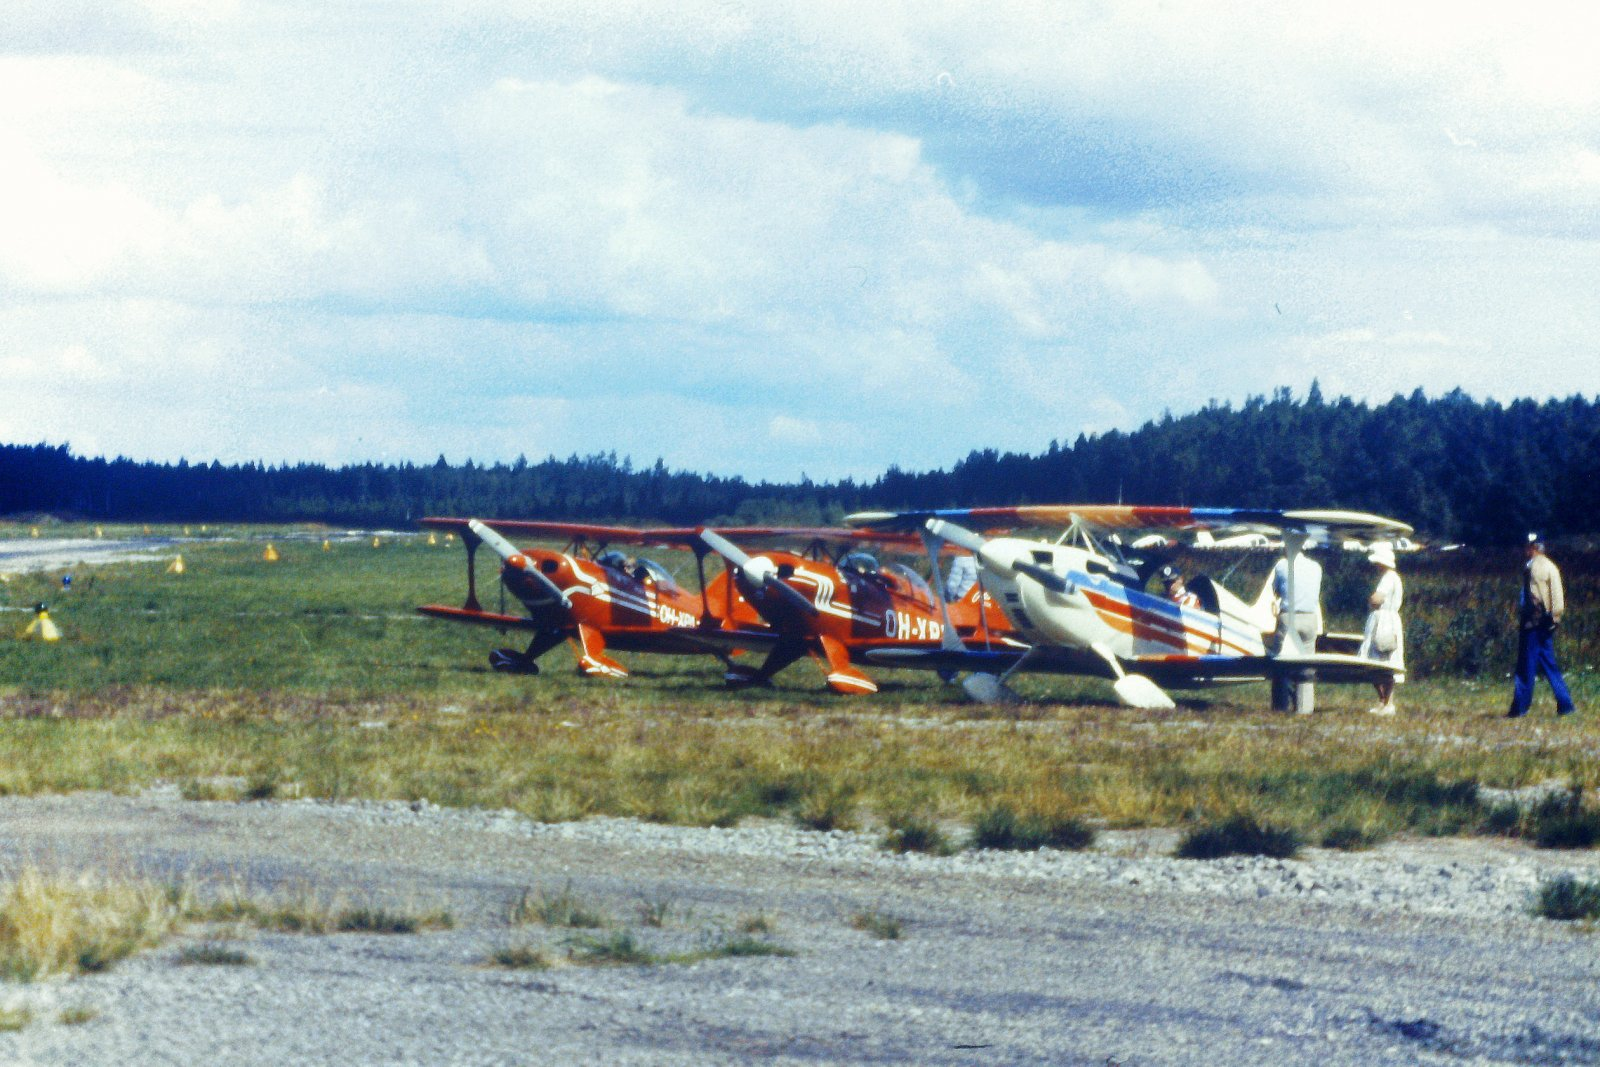 Christen Eagle II OH-XEA, Pitts S-1 Special OH-XPB & Pitts S-1 Special OH-XPA EFHN 1981